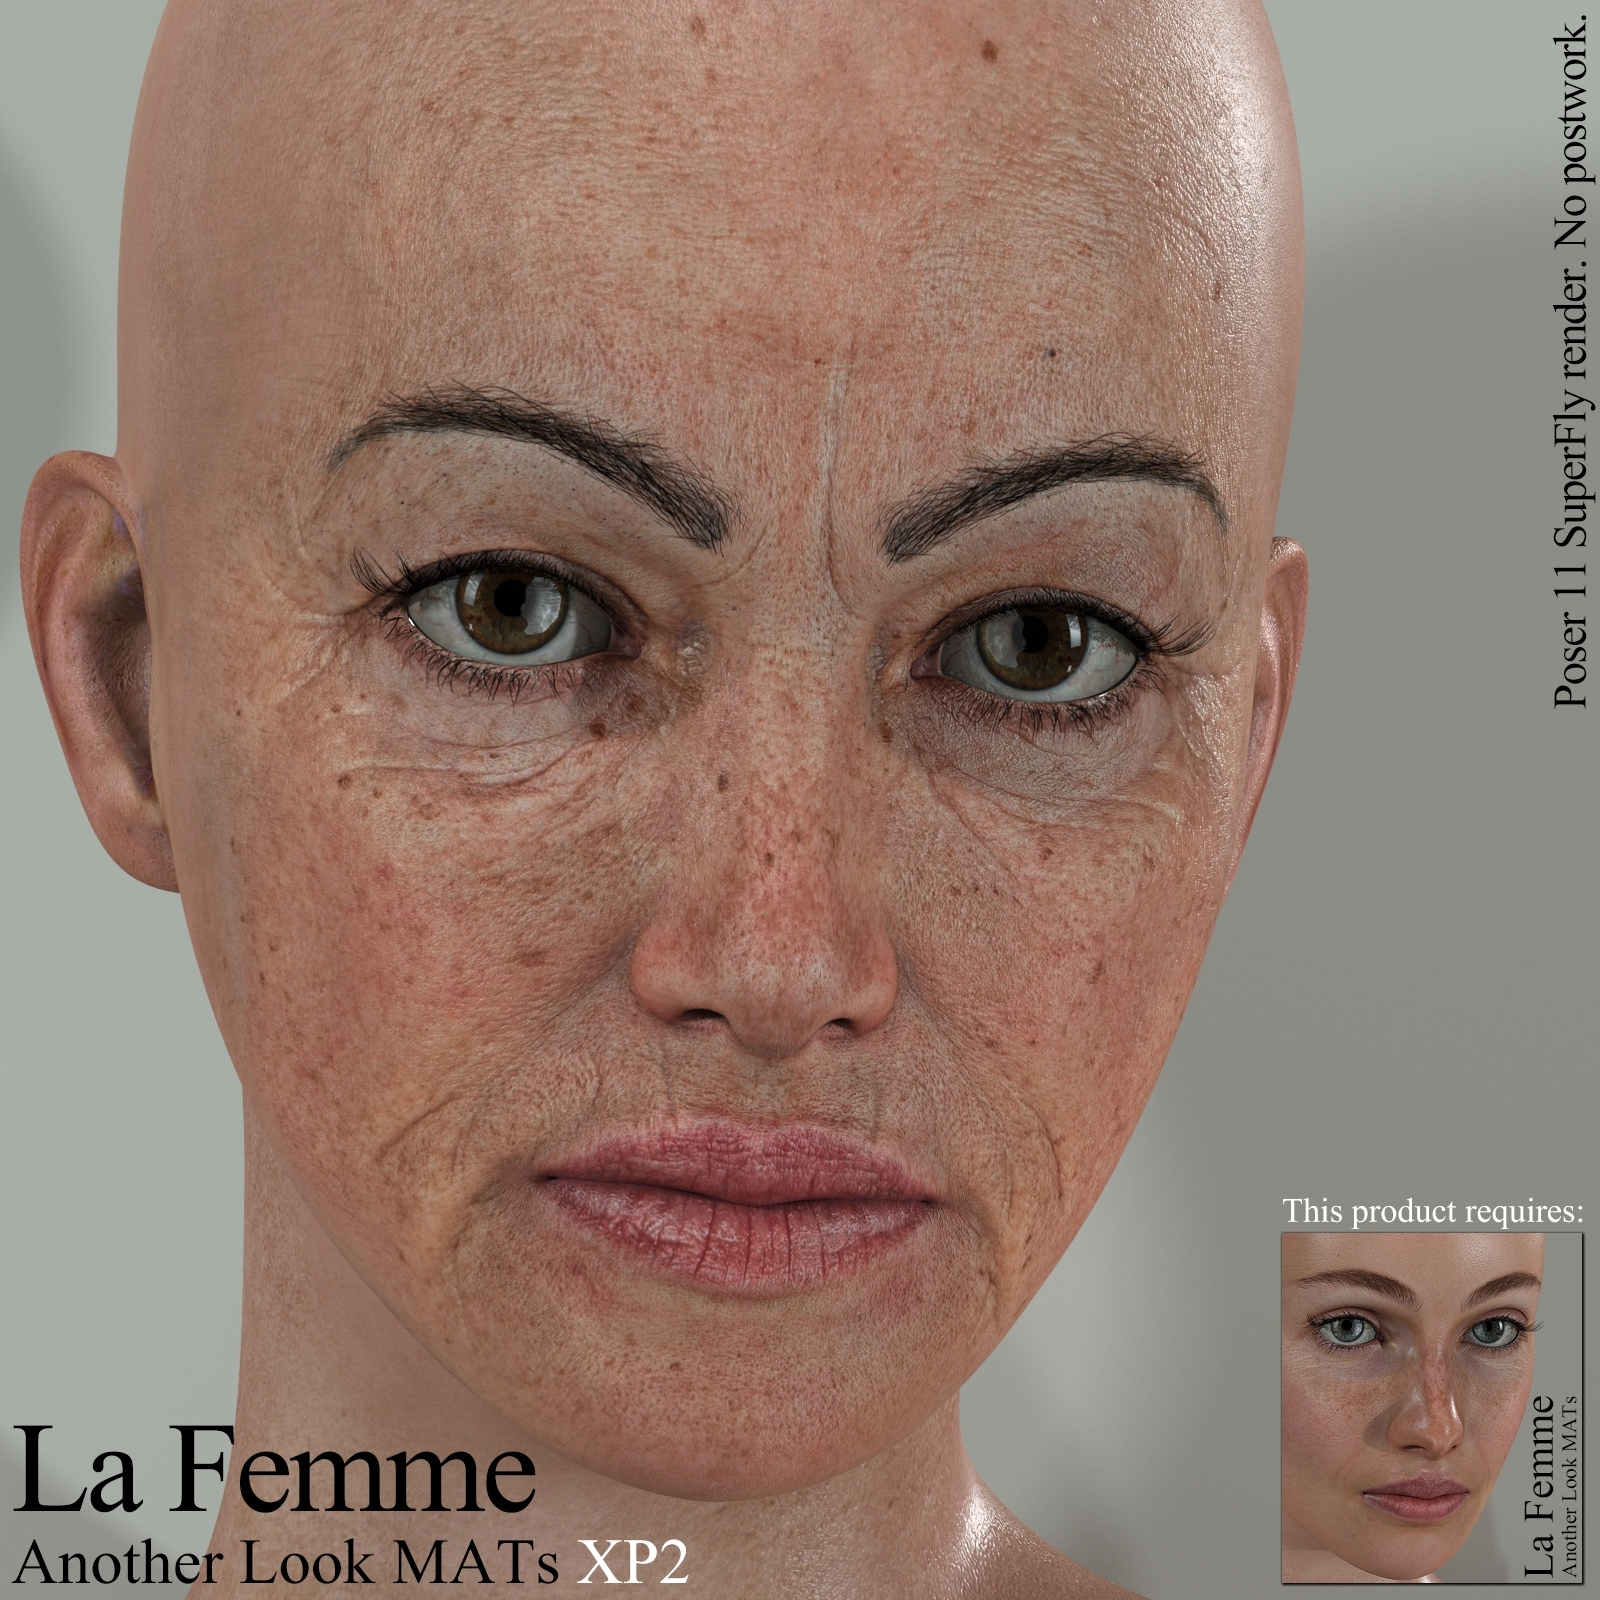 La Femme - Another Look MATs XP2 by 3Dream